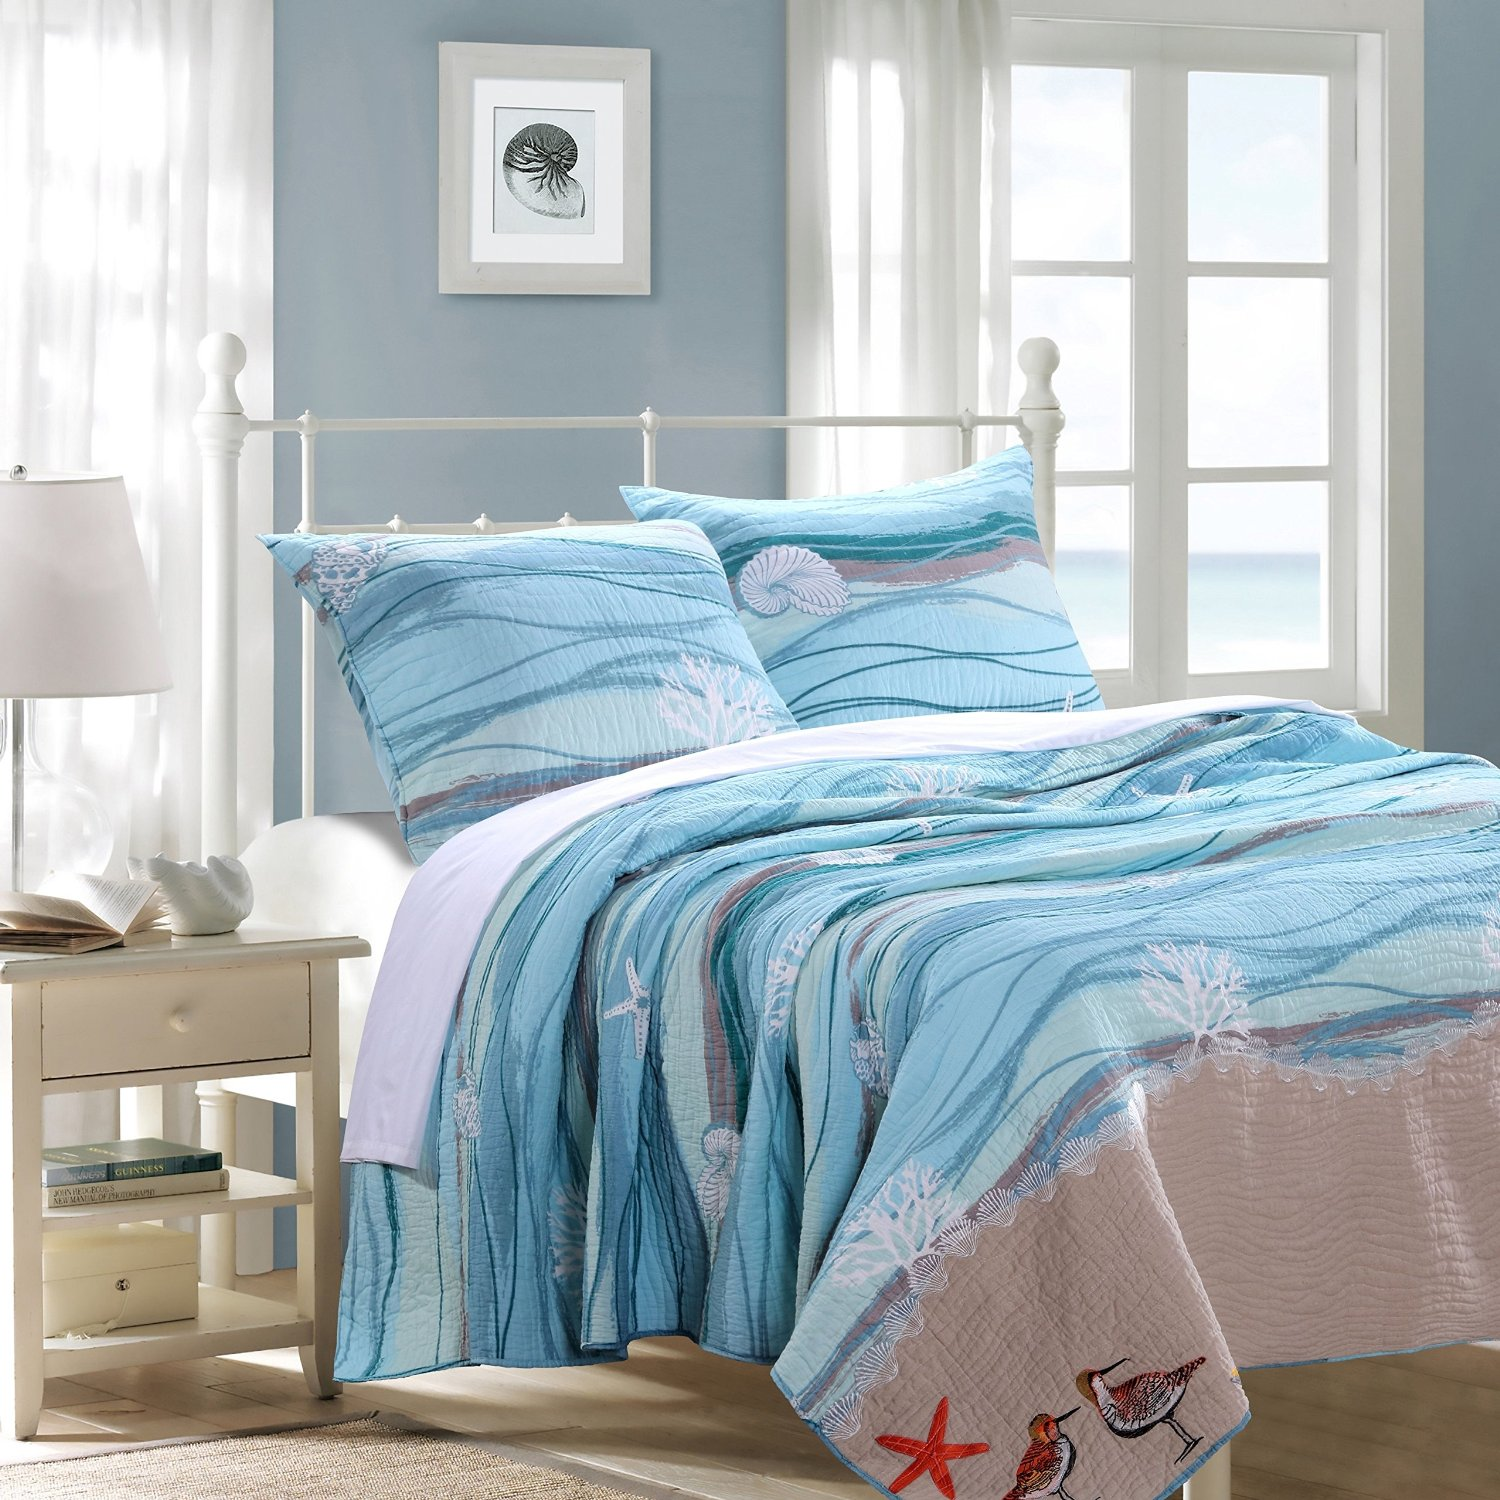 GHF 3 Piece King Ocean Themed Quilt Set, Coastal Sea Blue Beach Bedding, Turquoise Wave Pattern, Embroidered Seashells, Corals, Shore Birds, Sand Brown, Beautiful Design